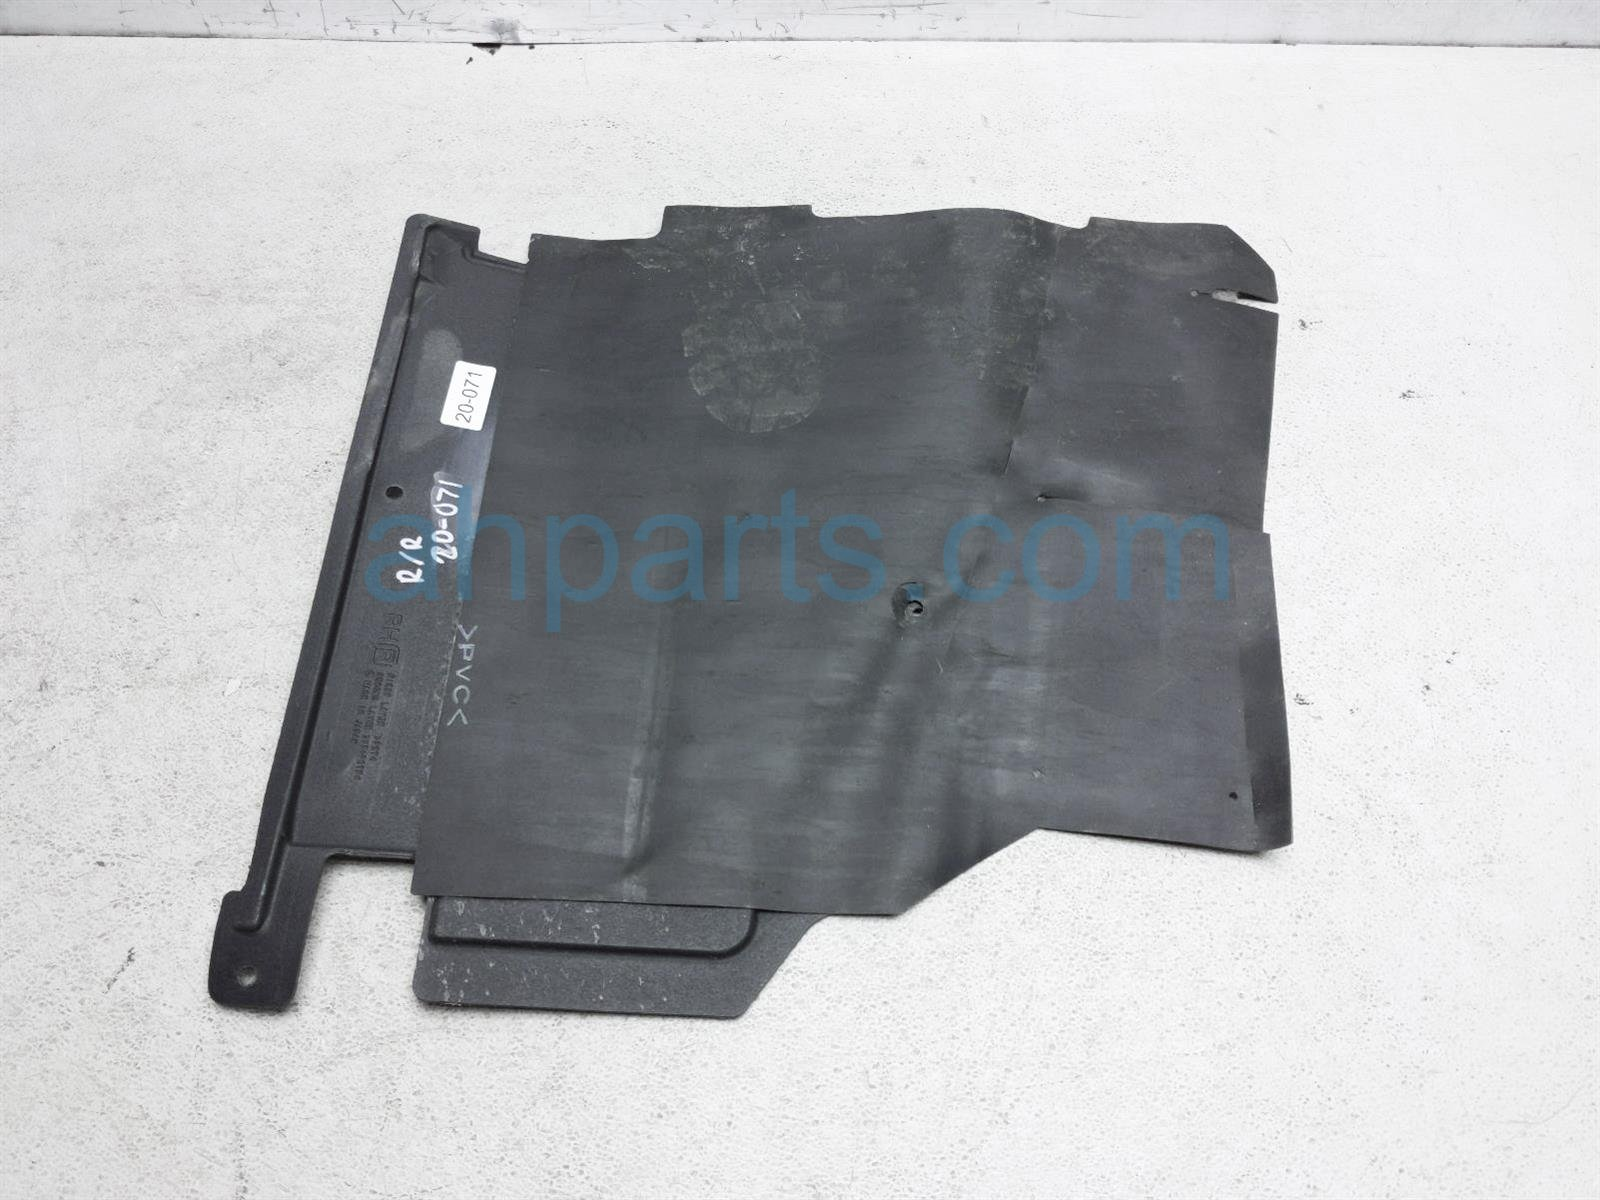 Sold 2007 Subaru Impreza Passenger Cargo Bulkhead Trim Cover 94511FE040 Replacement